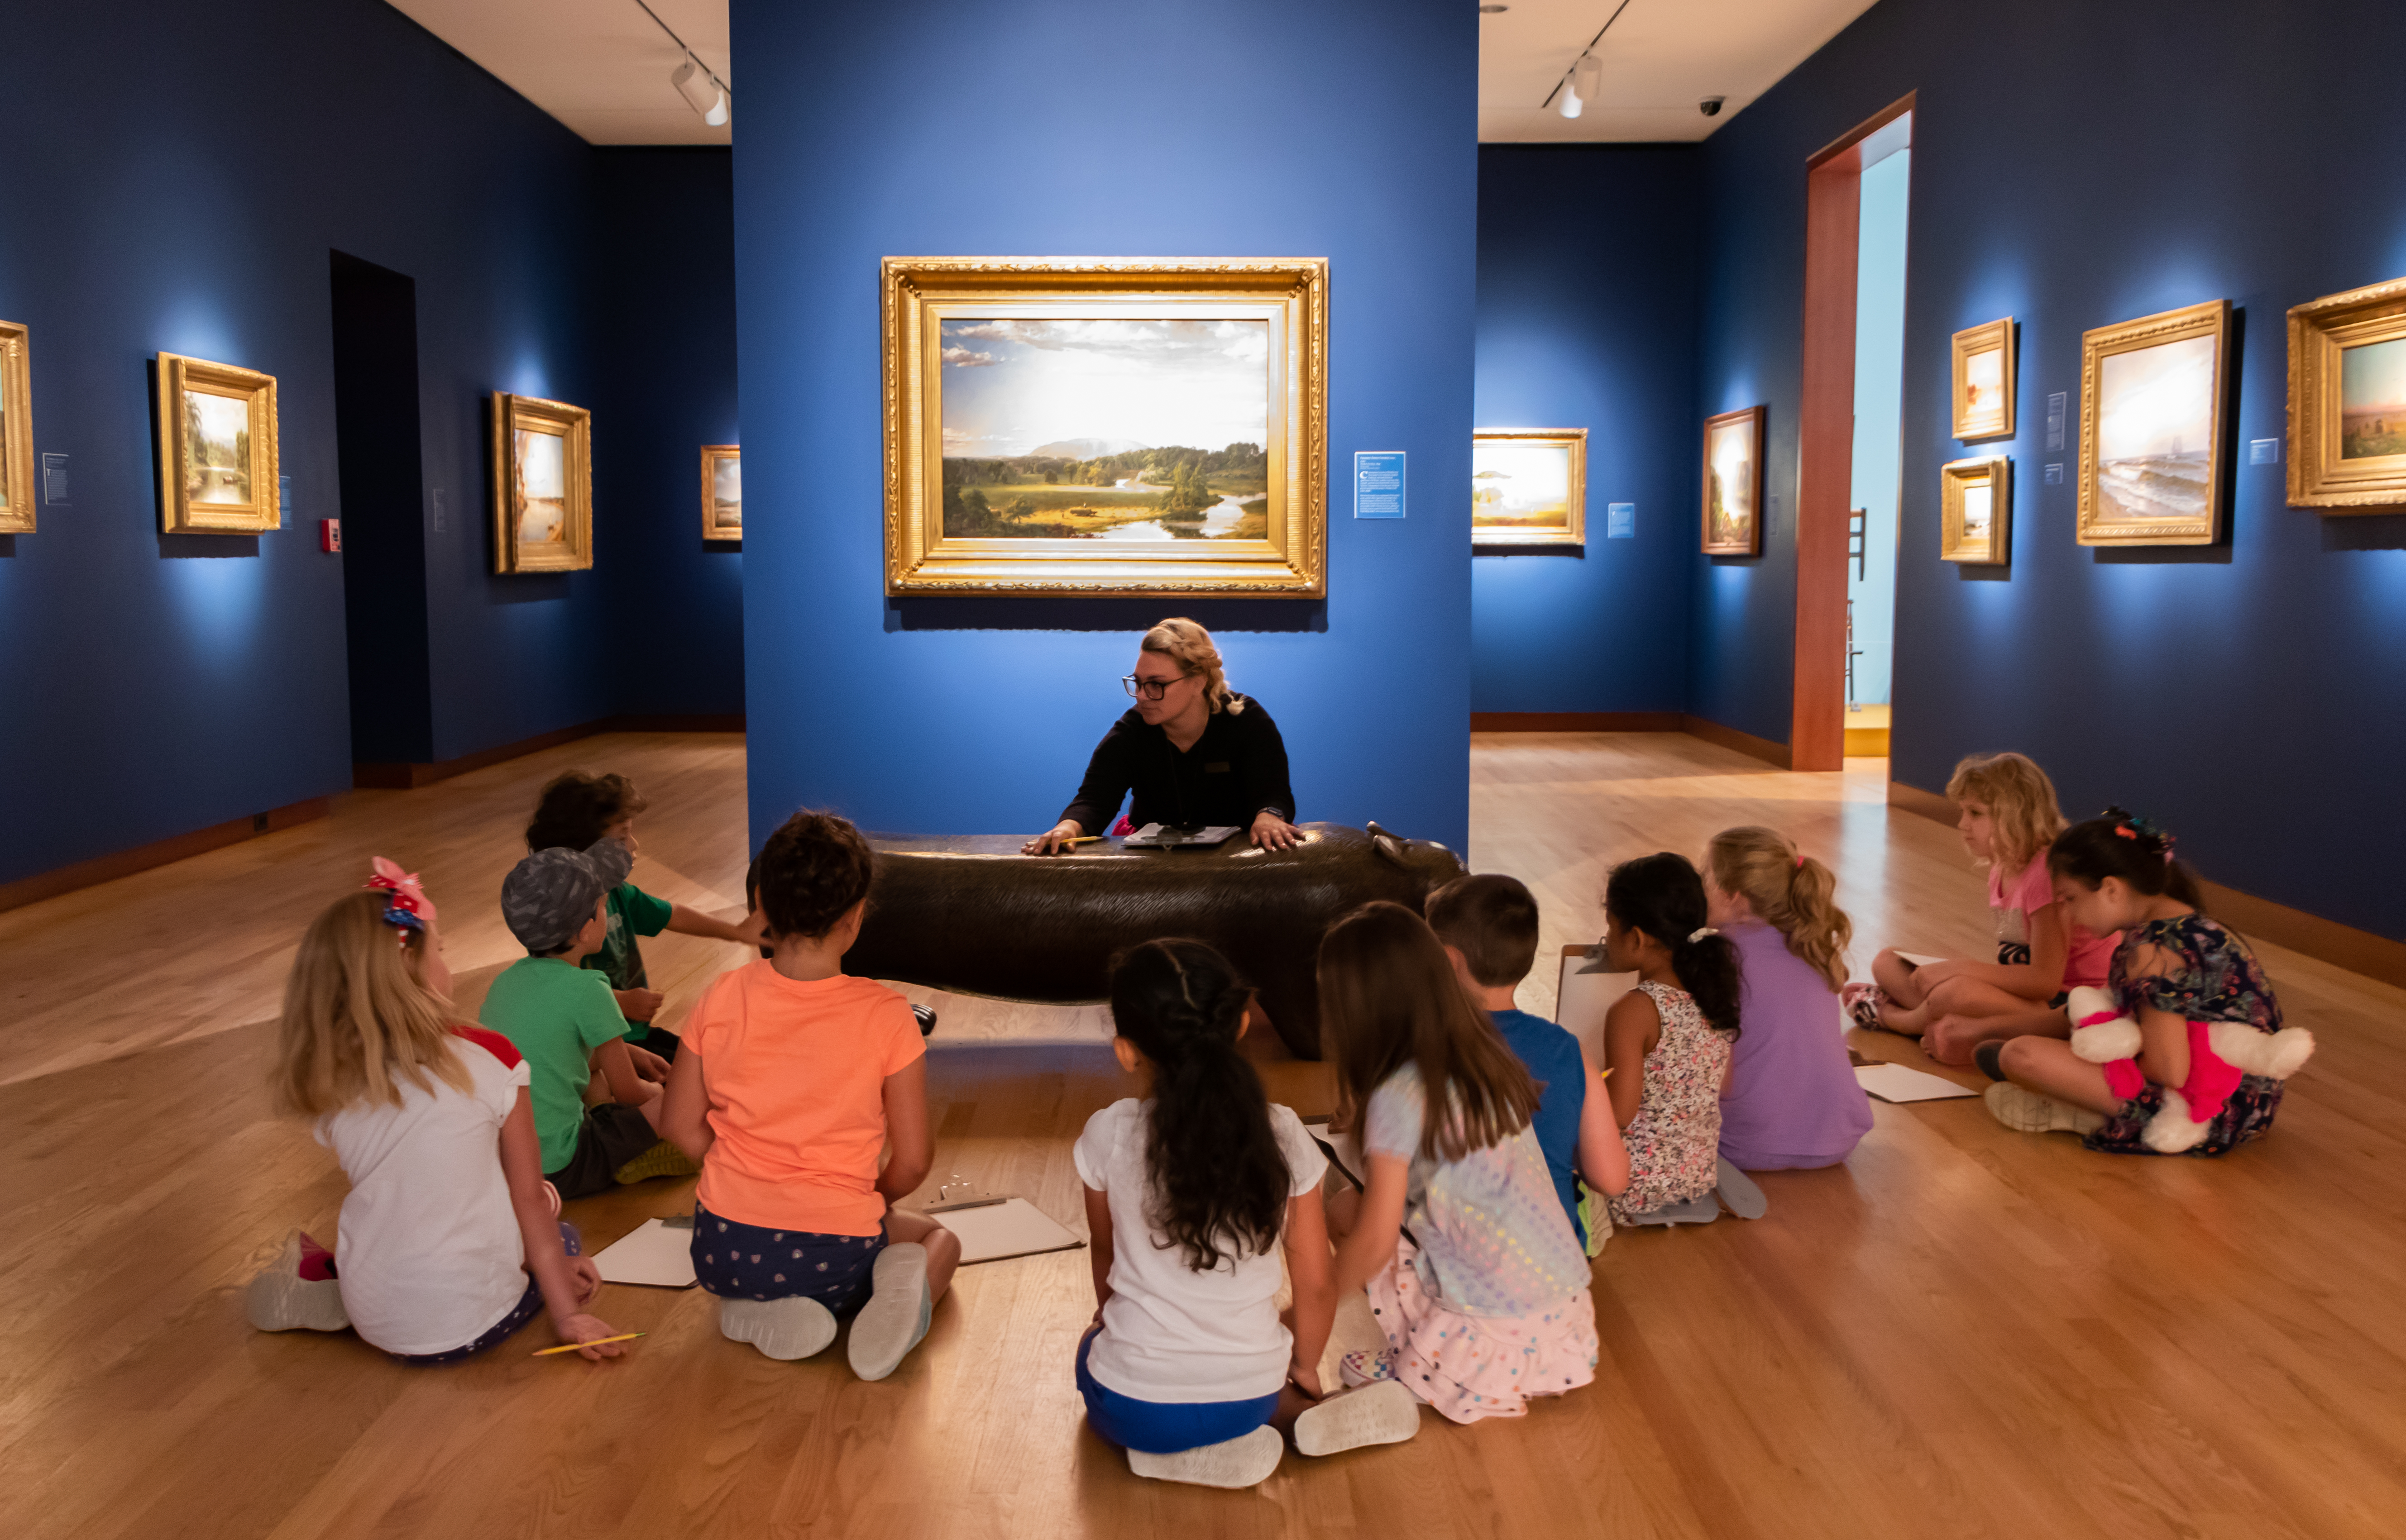 Students Explore the Galleries